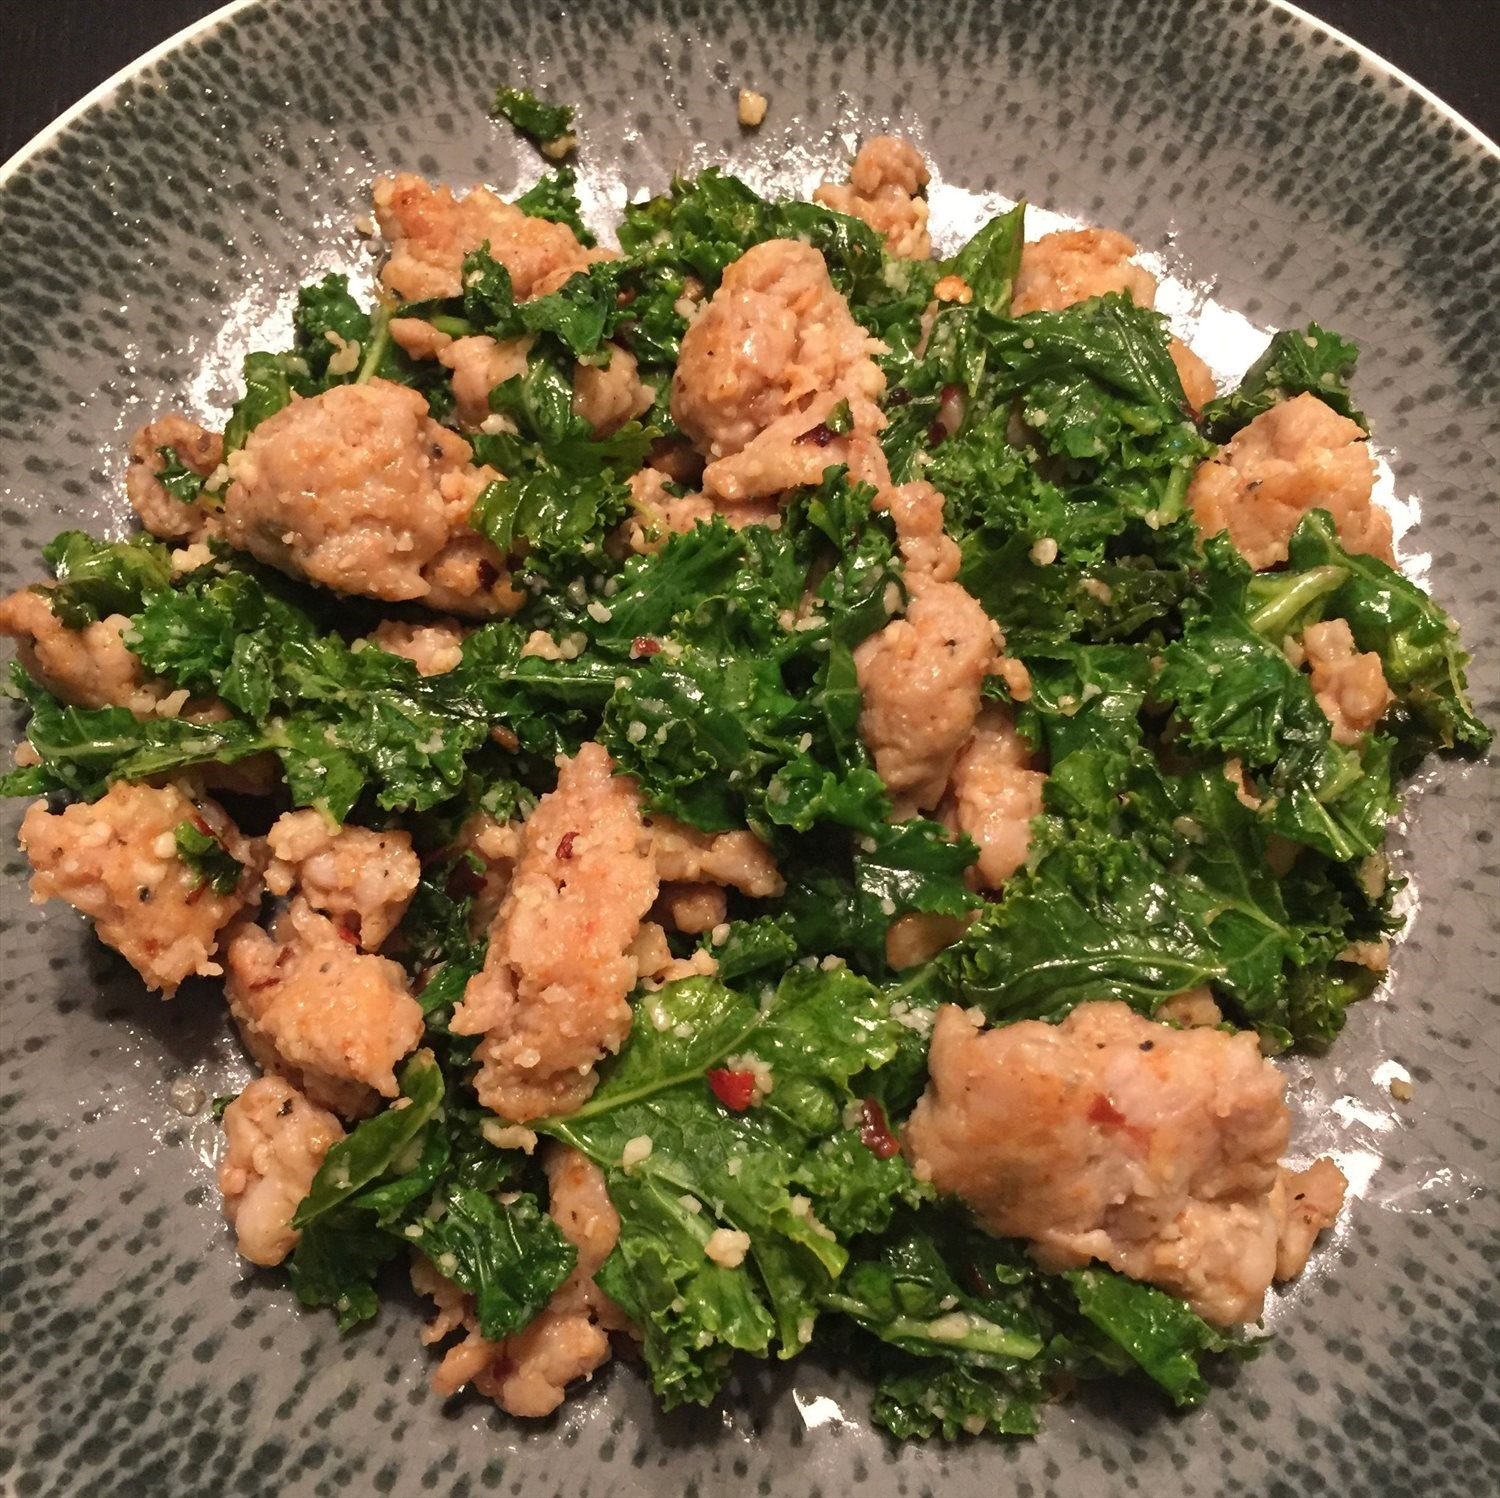 Kale and Chicken Sausage Skillet